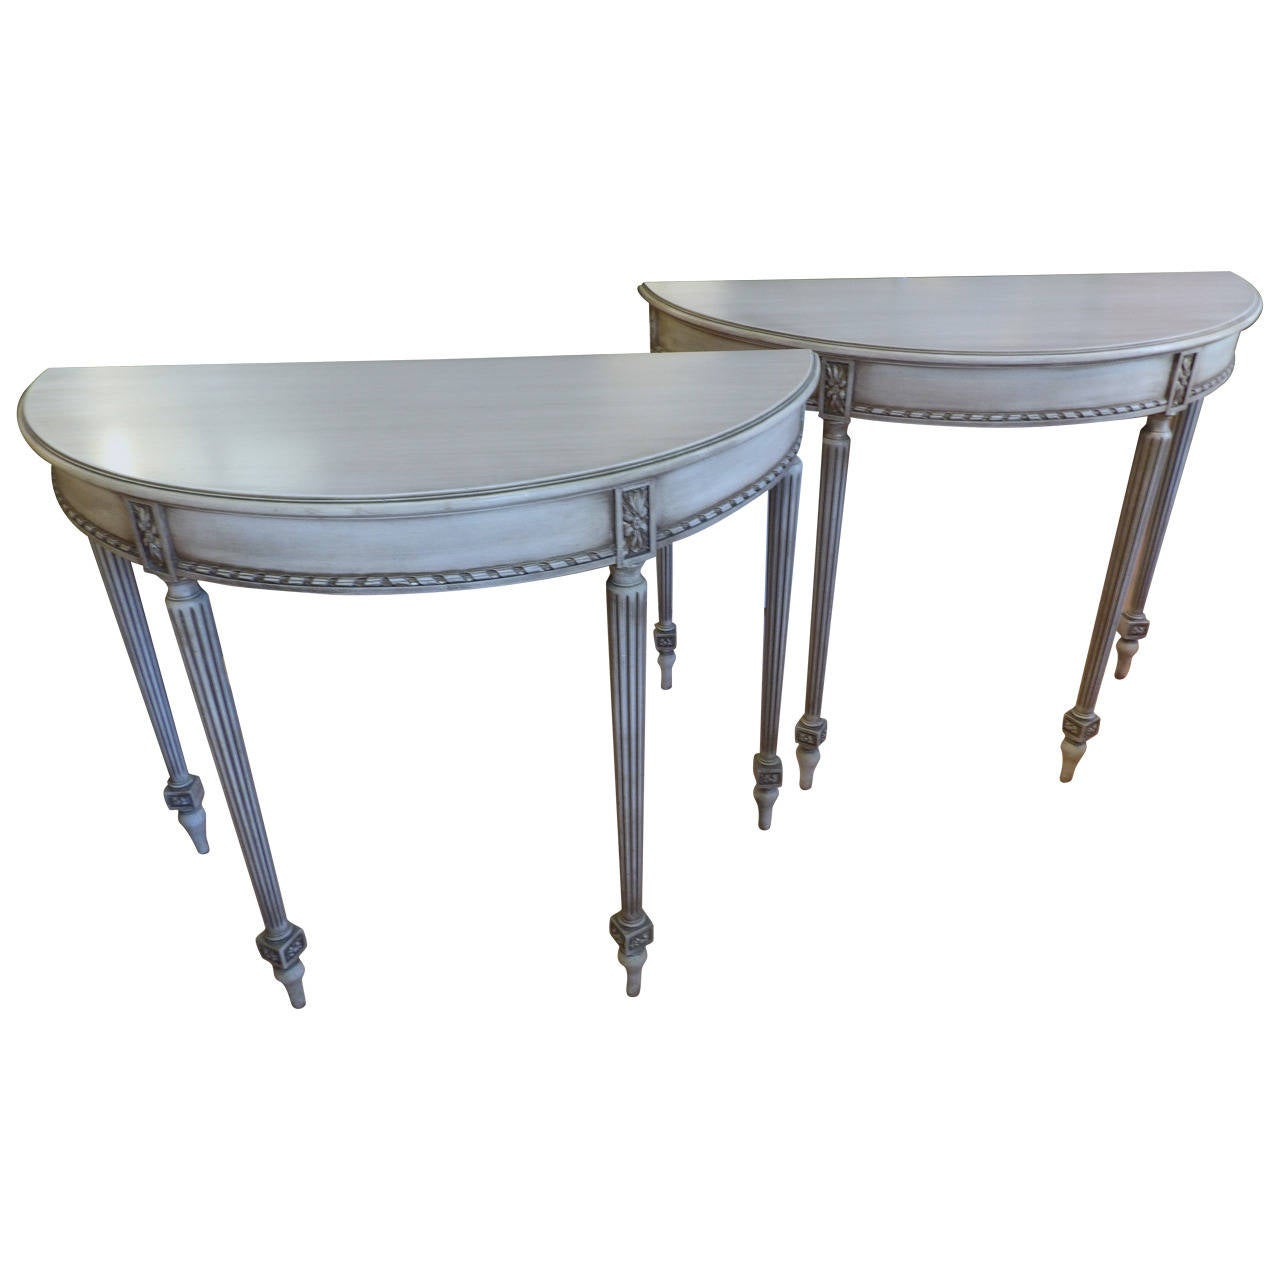 Pair of sheraton style demilune tables at 1stdibs for What is sheraton style furniture